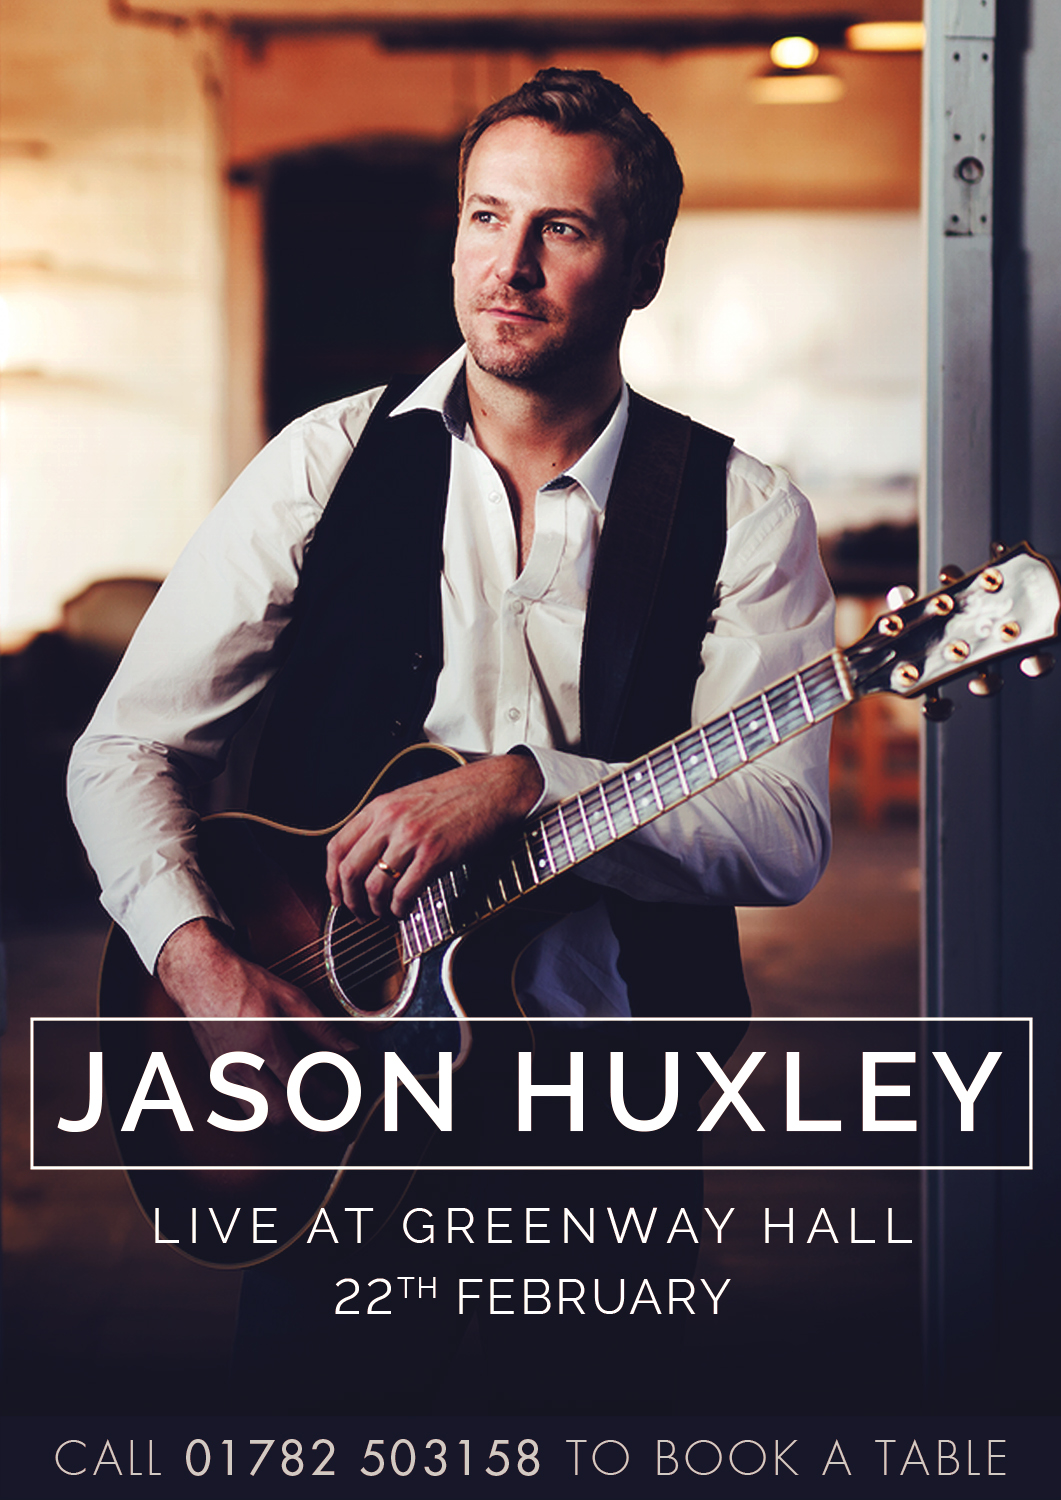 Jason Huxley performing live at Greenway Hall on Friday 22nd February.